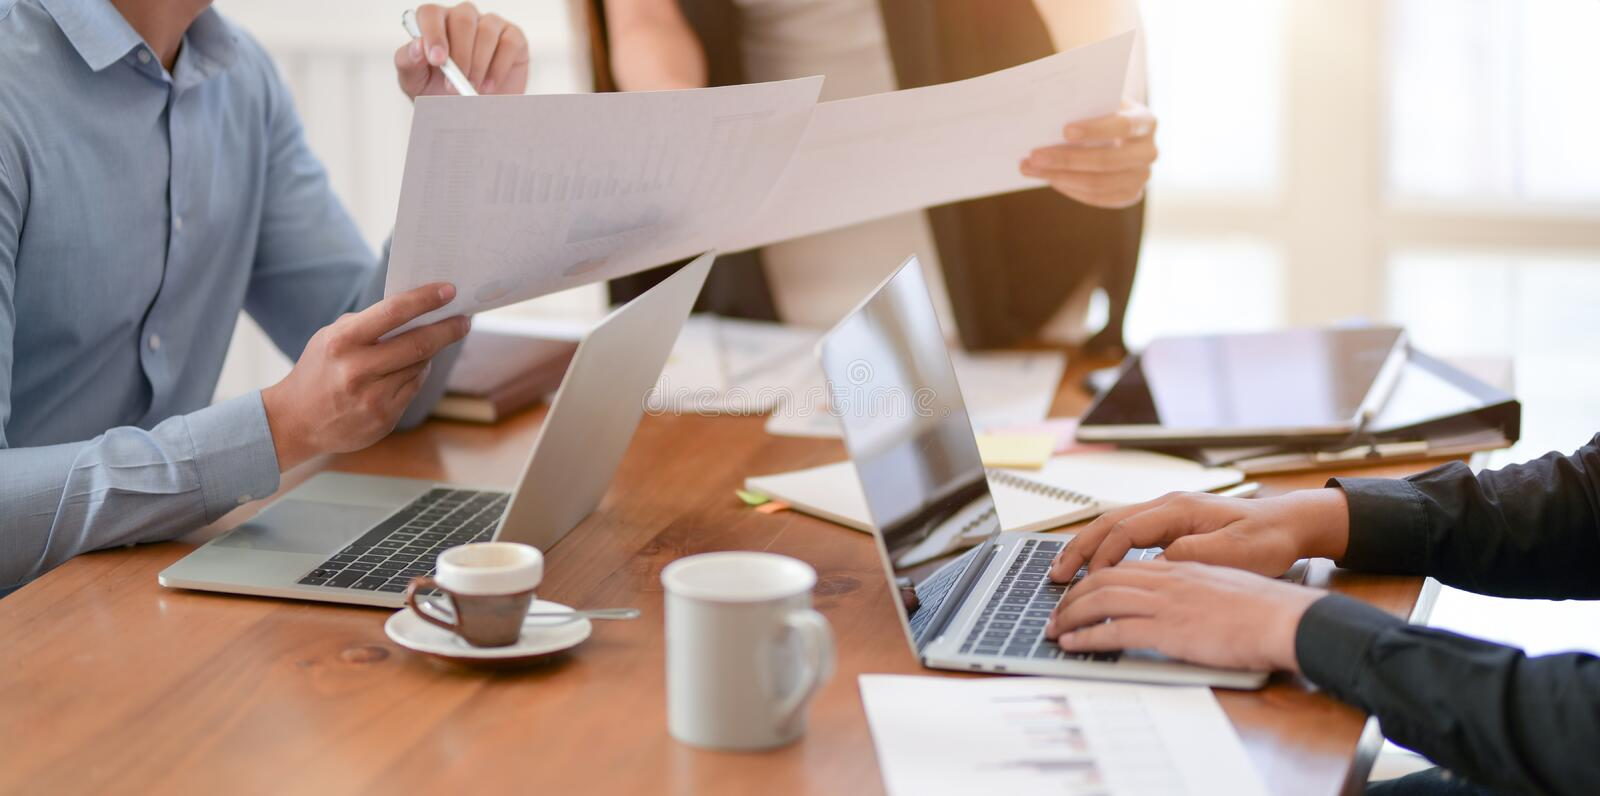 Professional business team working on their project together royalty free stock photo